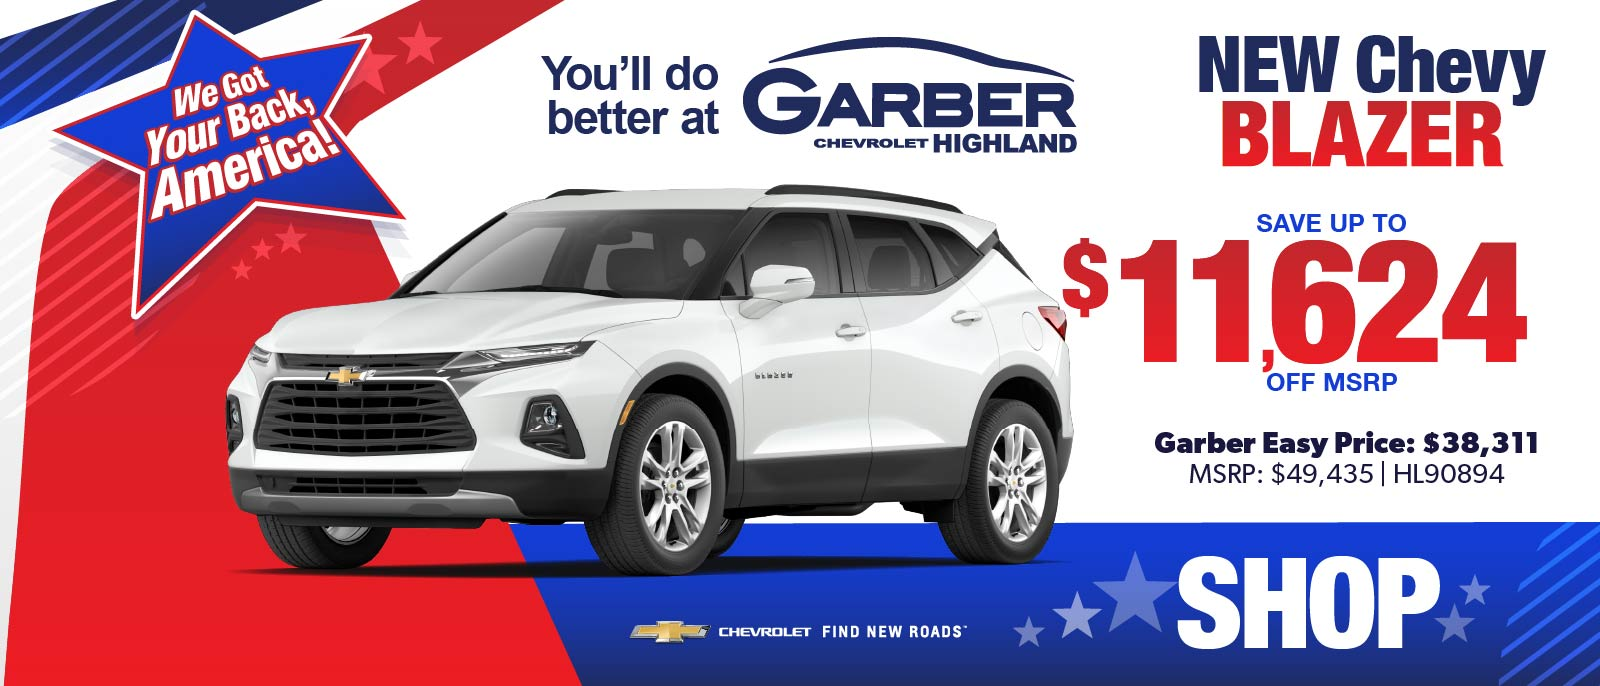 NEW Chevy Blazer - SAVE up to $11,624 off MSRP | Garber Easy Price: $38,311 | MSRP $49,435 #HL90894